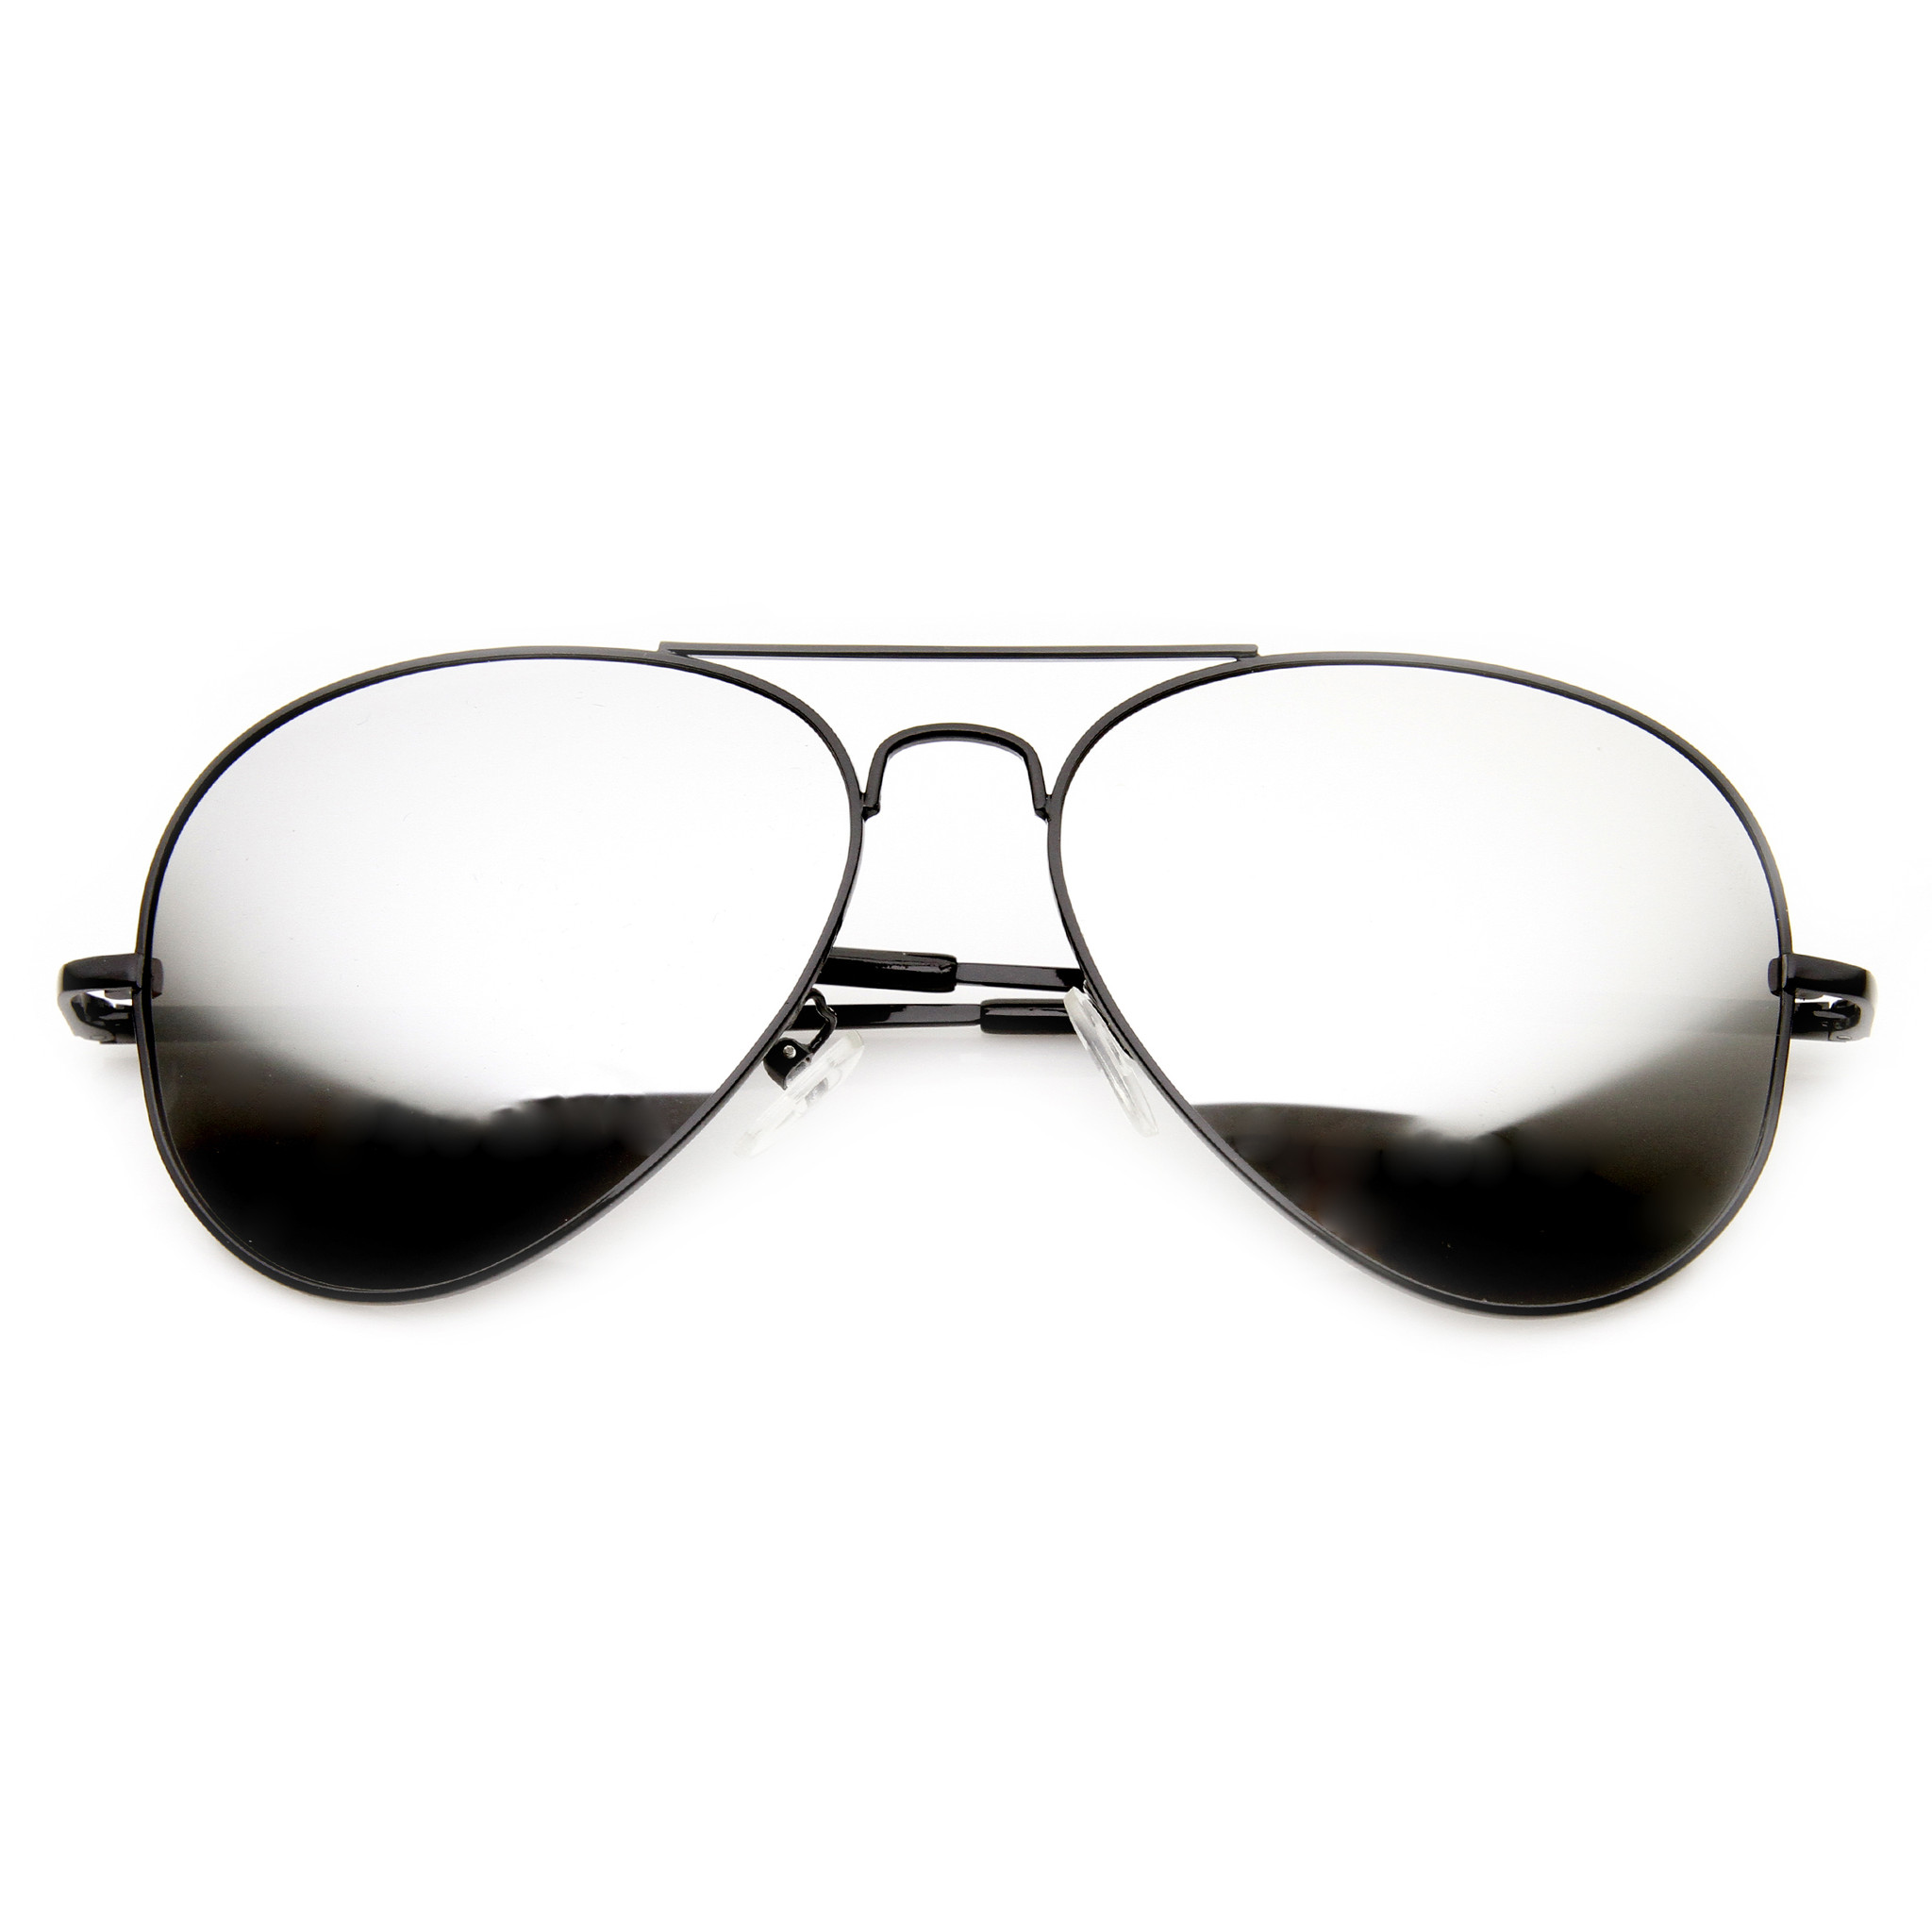 image gallery mirrored aviators